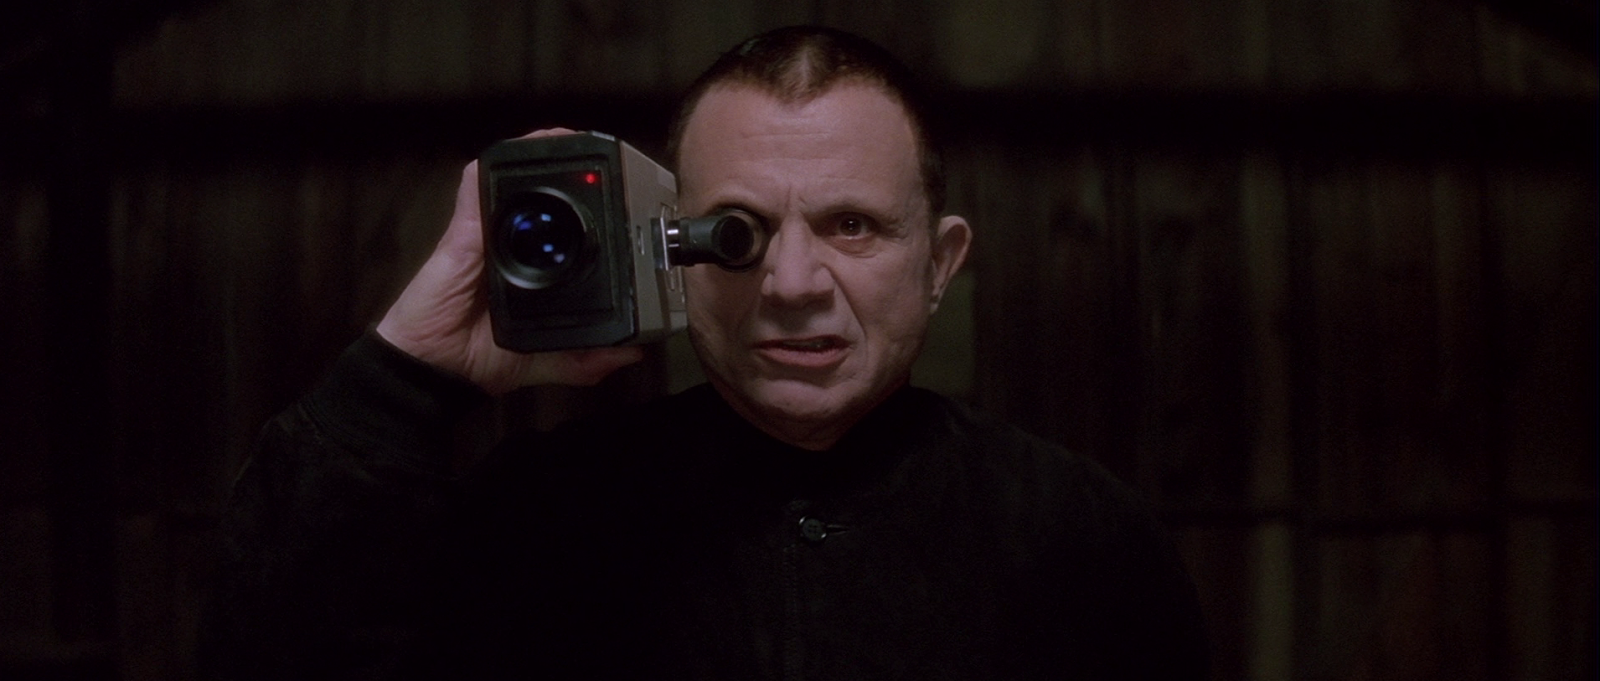 Robert Blake as the Mystery Man in David Lynch's Lost Highway